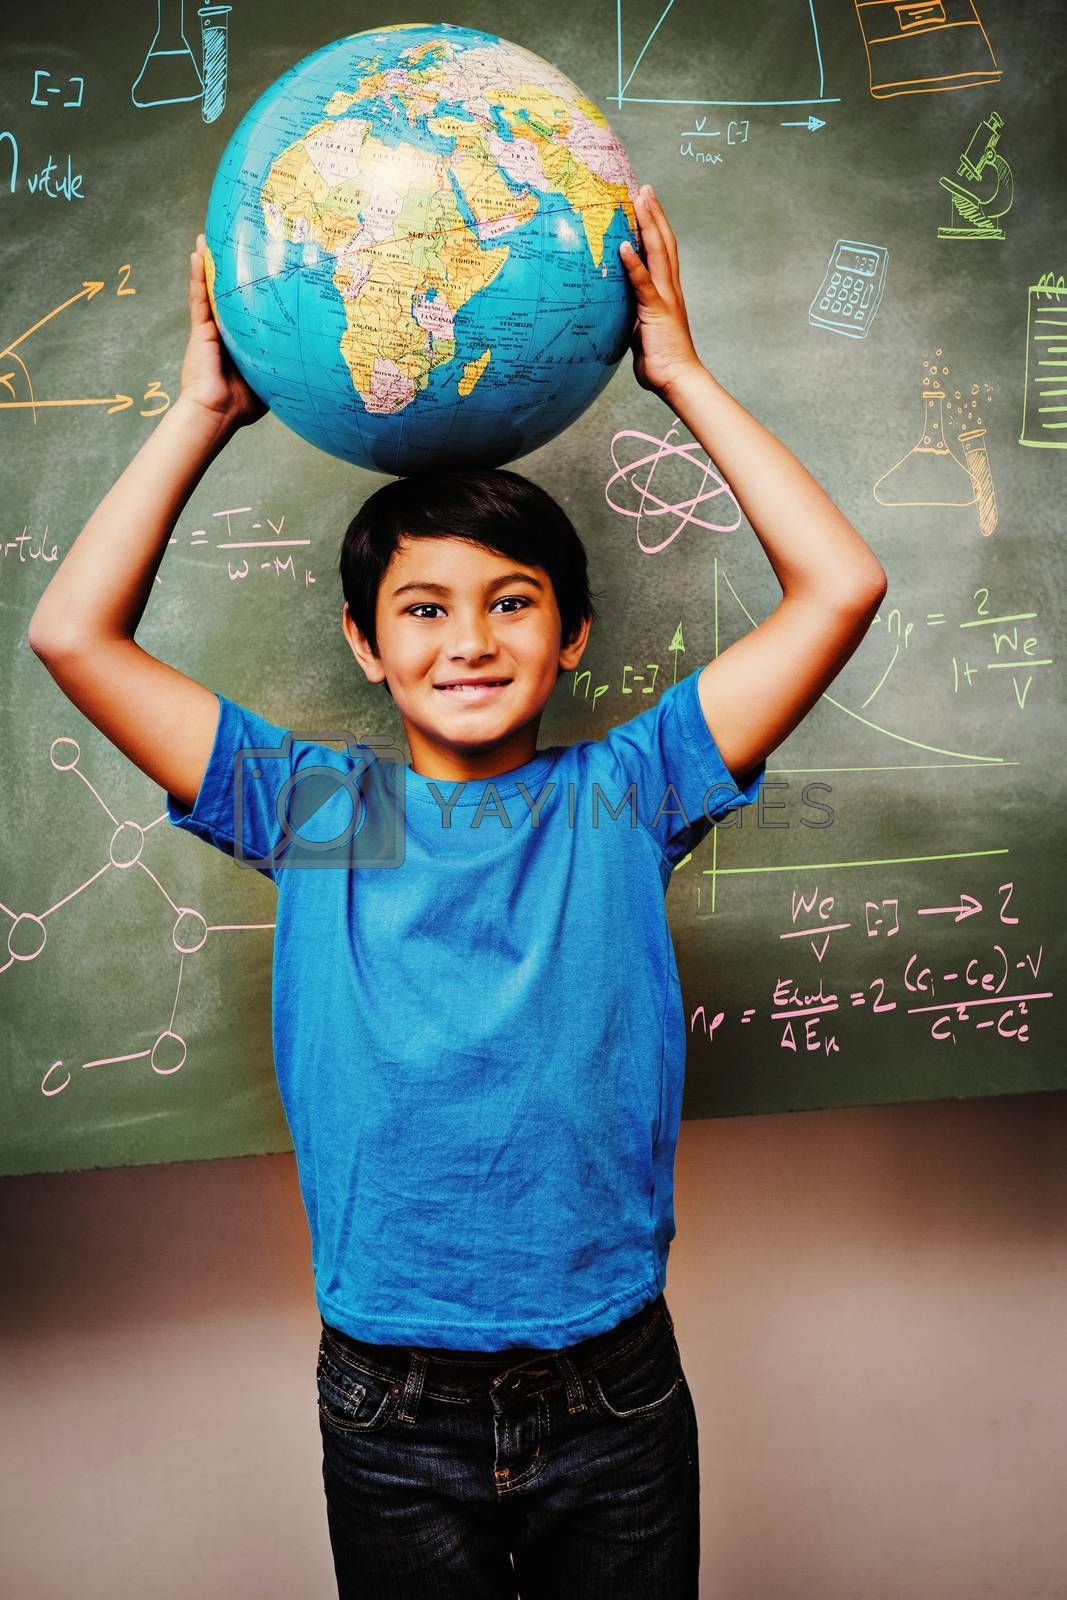 Education doodles against little boy holding globe over head